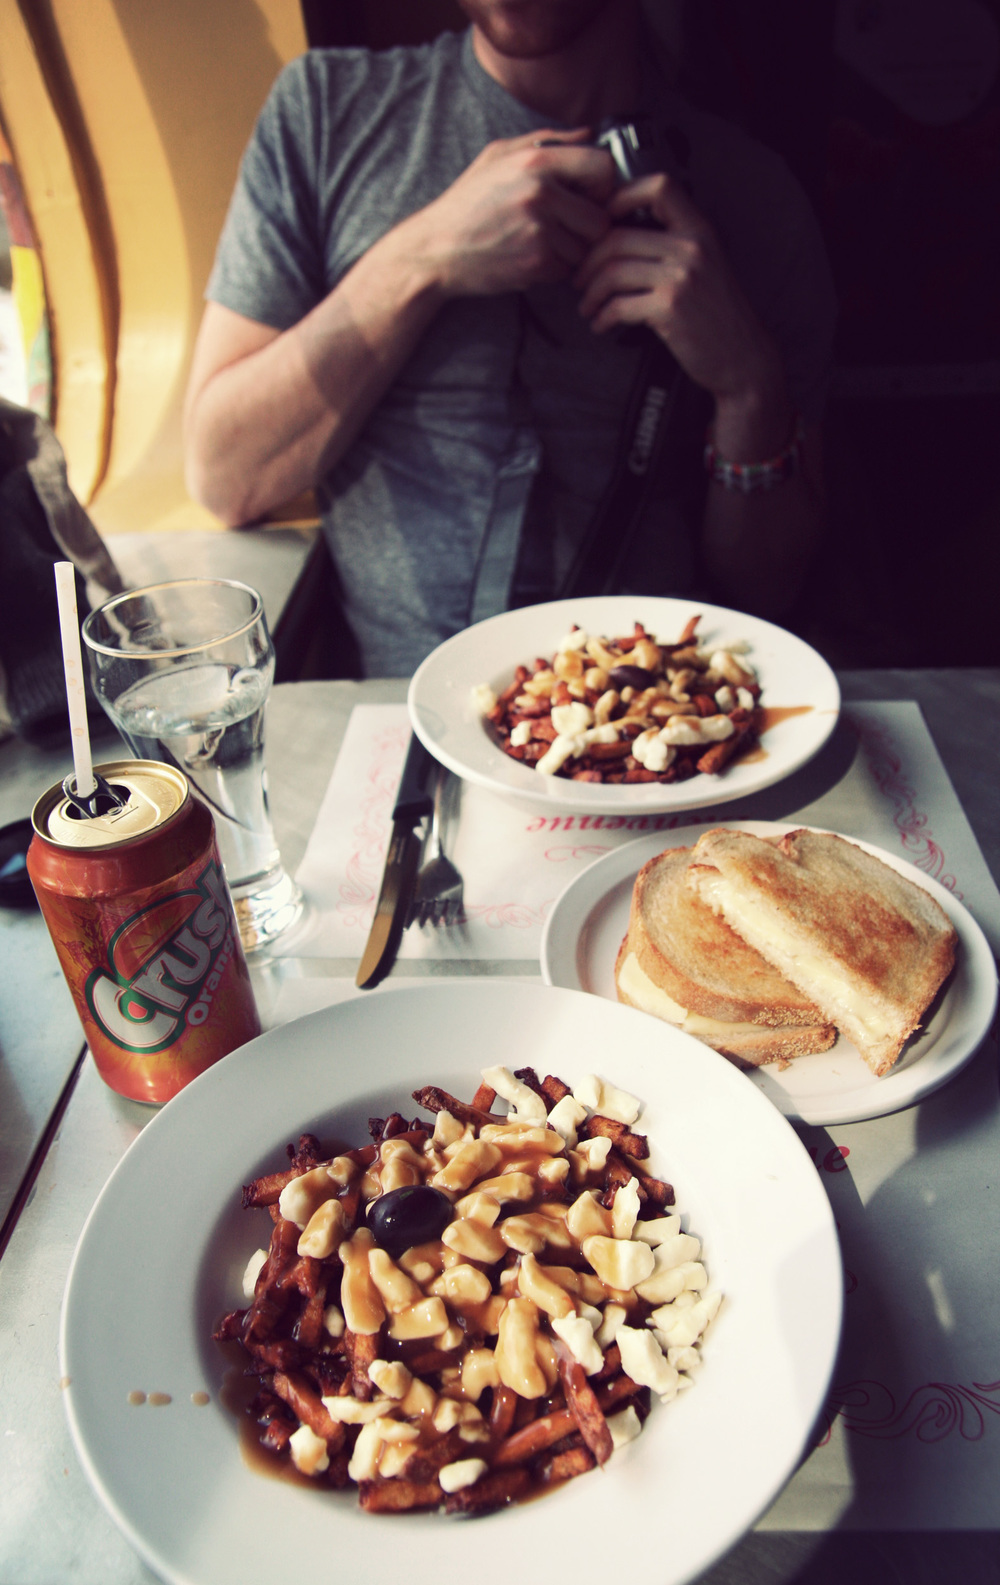 Patati-Patata: Tasty sauce, perfect fries, AND grilled cheese? AND Orange Crush?? I died.